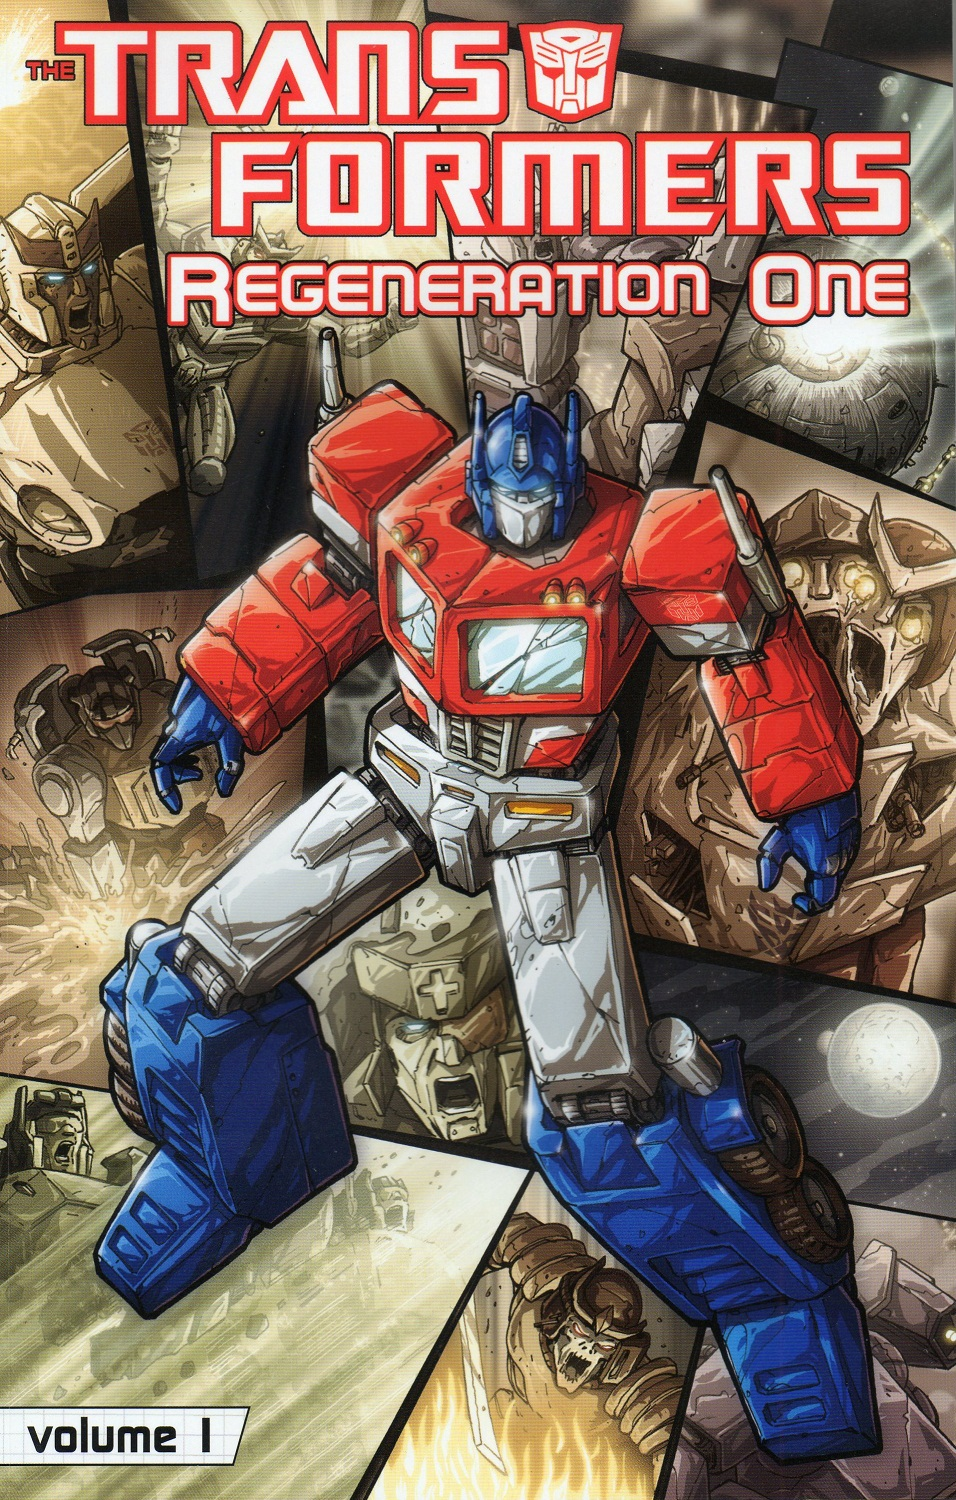 Transformers Regeneration One Volume 1 Image